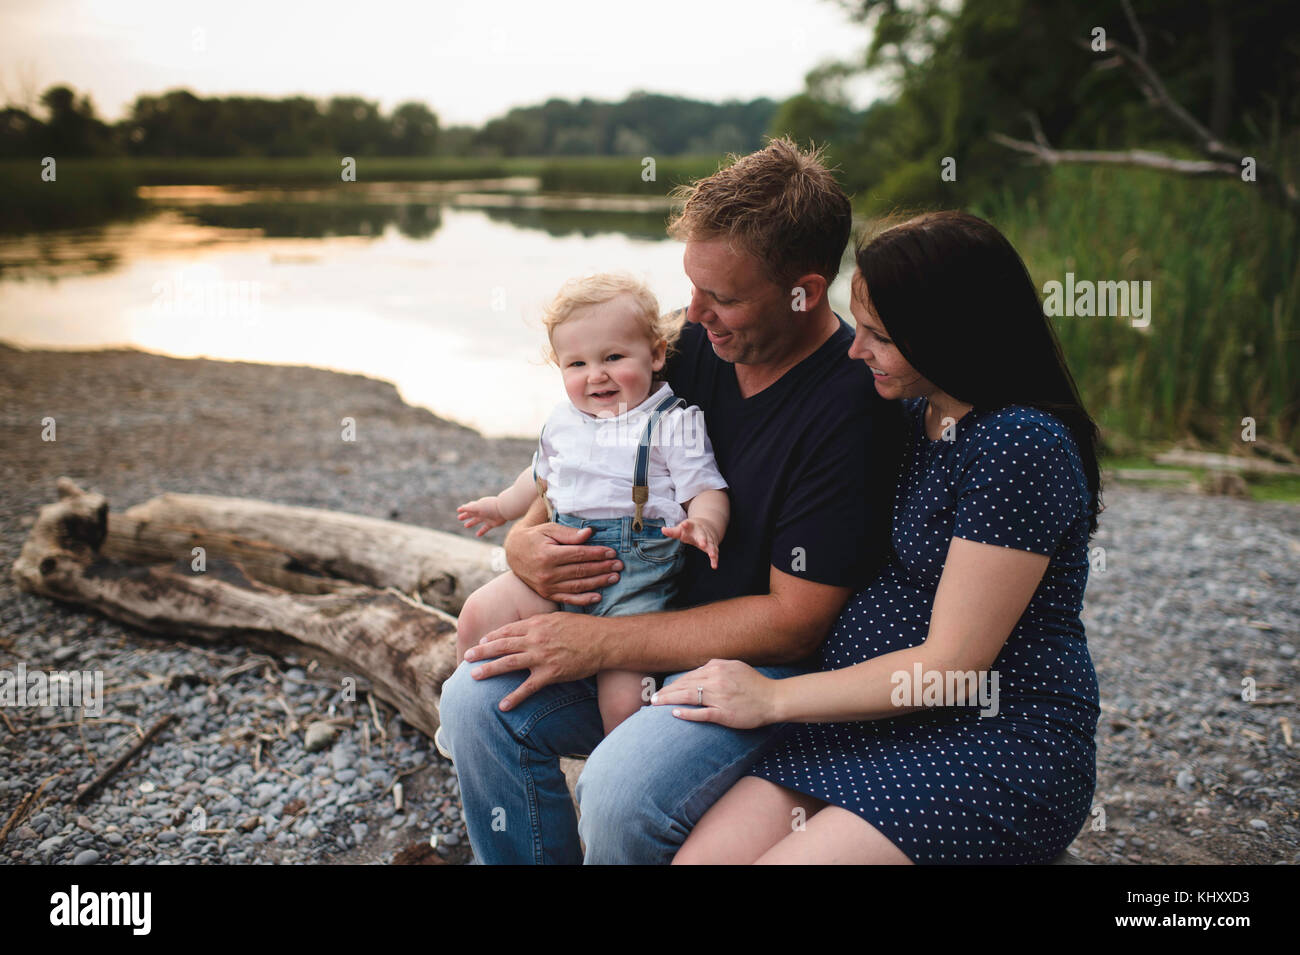 Pregnant couple sitting on beach log with male toddler son, Lake Ontario, Canada - Stock Image